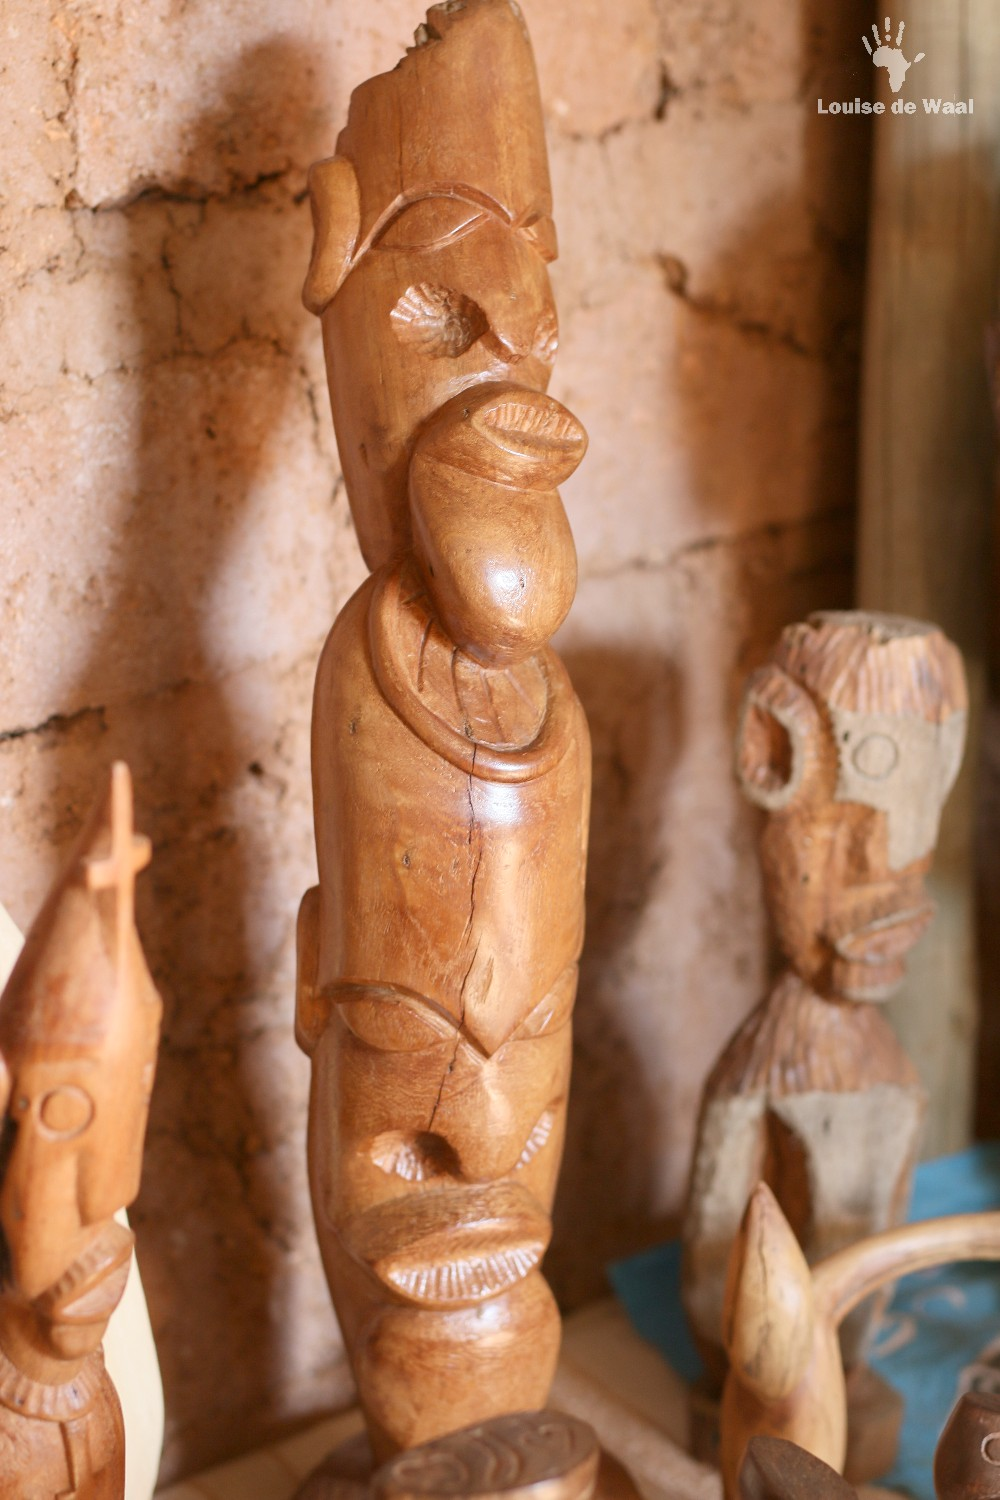 Wood carving by Patrick Manyike Limpopo